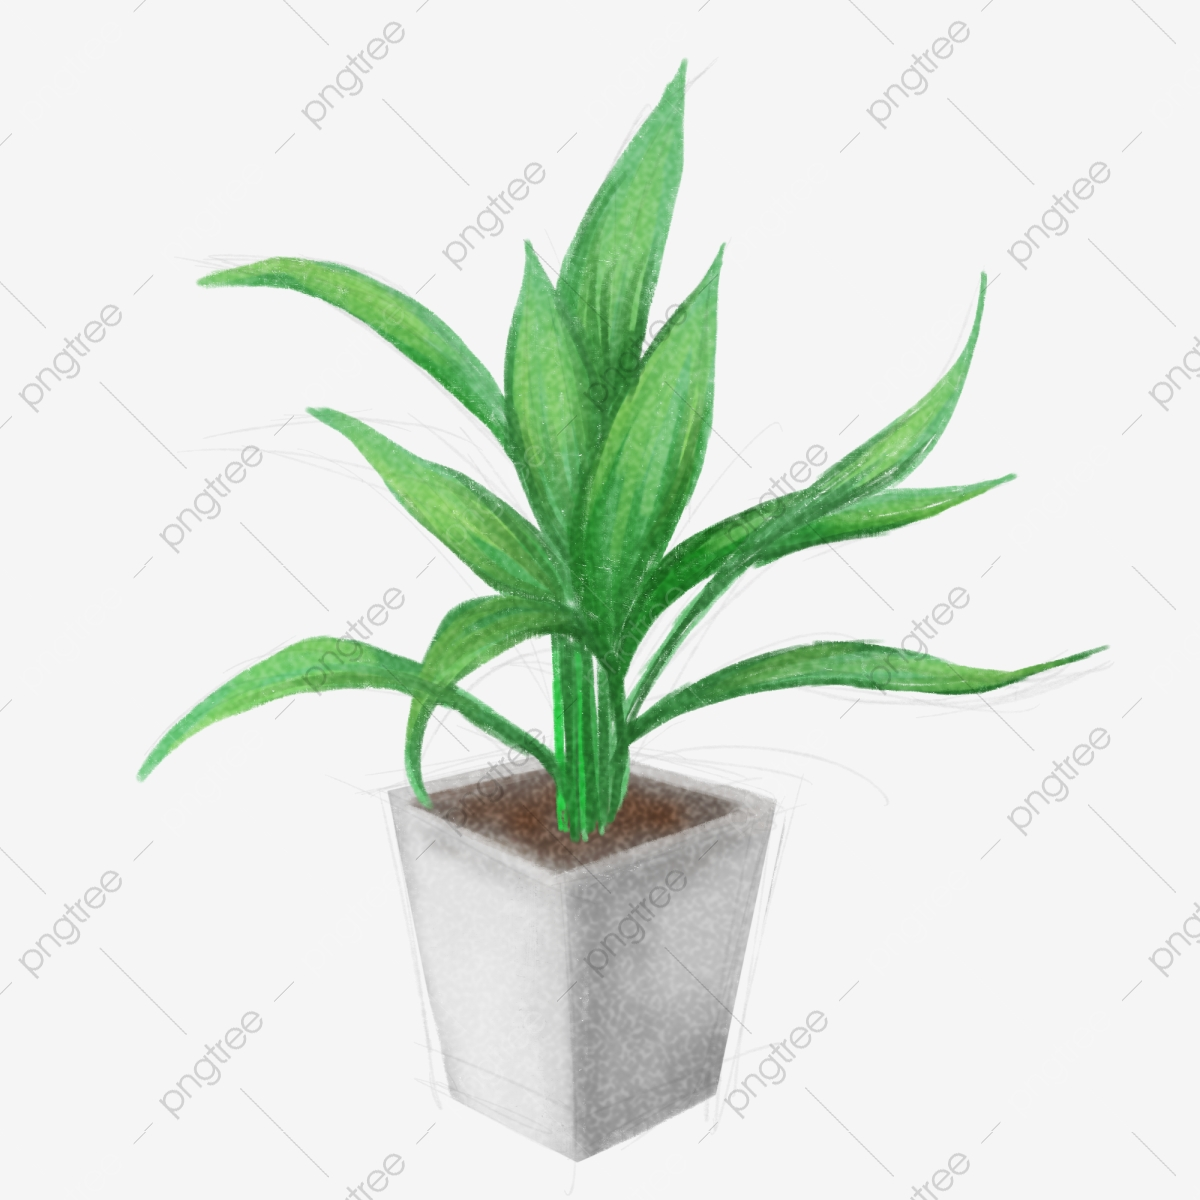 225 & Hand Painted Green Leaf Bamboo Green Leaves White Flower Pot ...